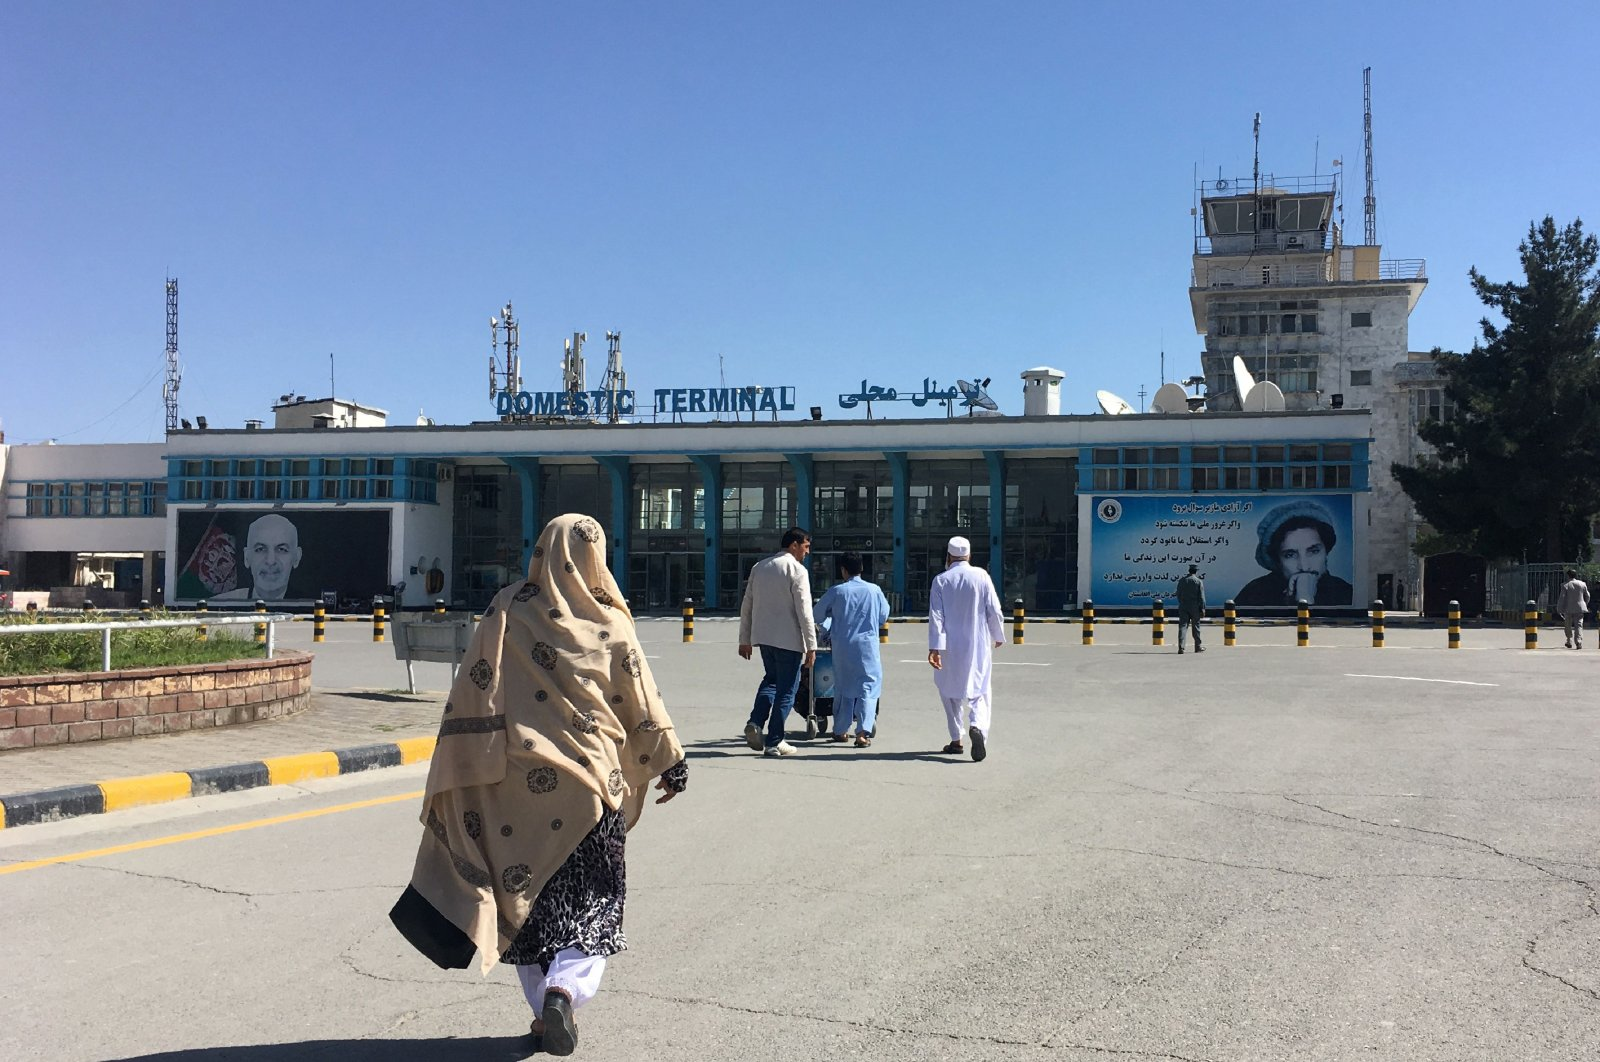 People arrive at the domestic terminal of the Hamid Karzai International Airport in Kabul, Afghanistan, May 8, 2018. (AFP Photo)